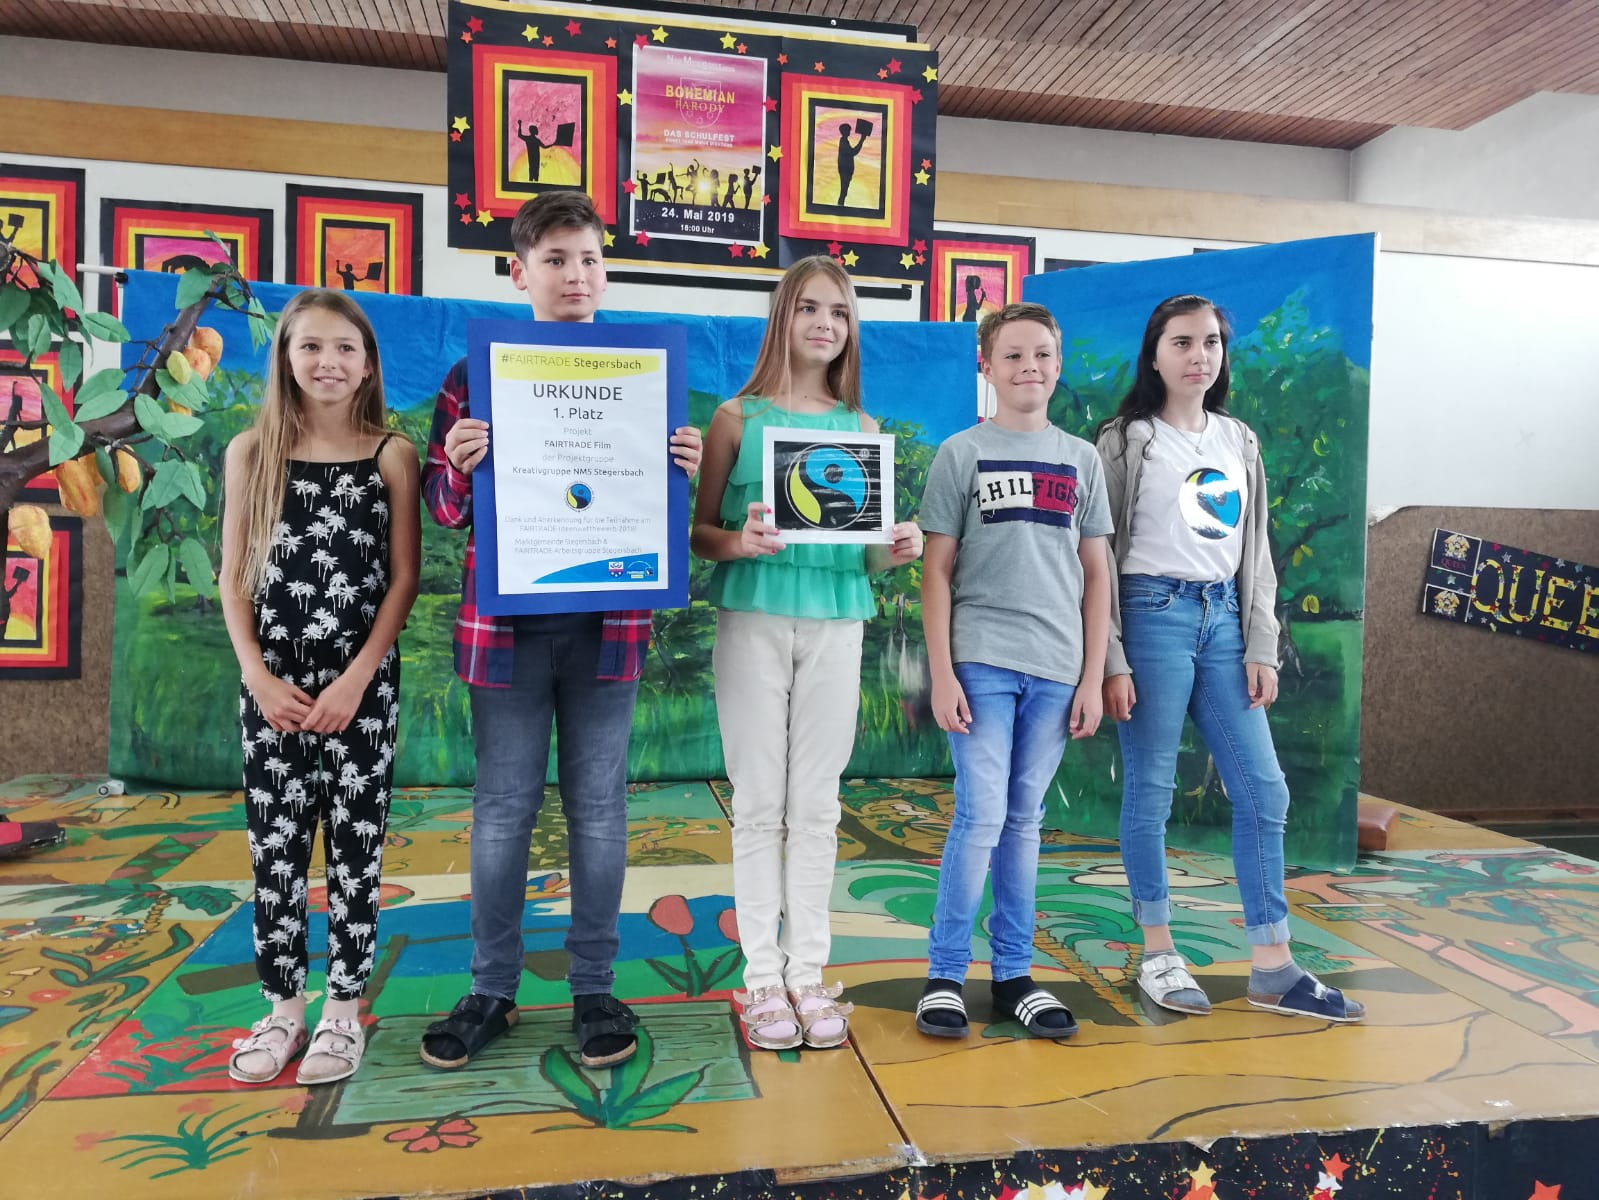 The fairtrade show der NMS Stegersbach 2